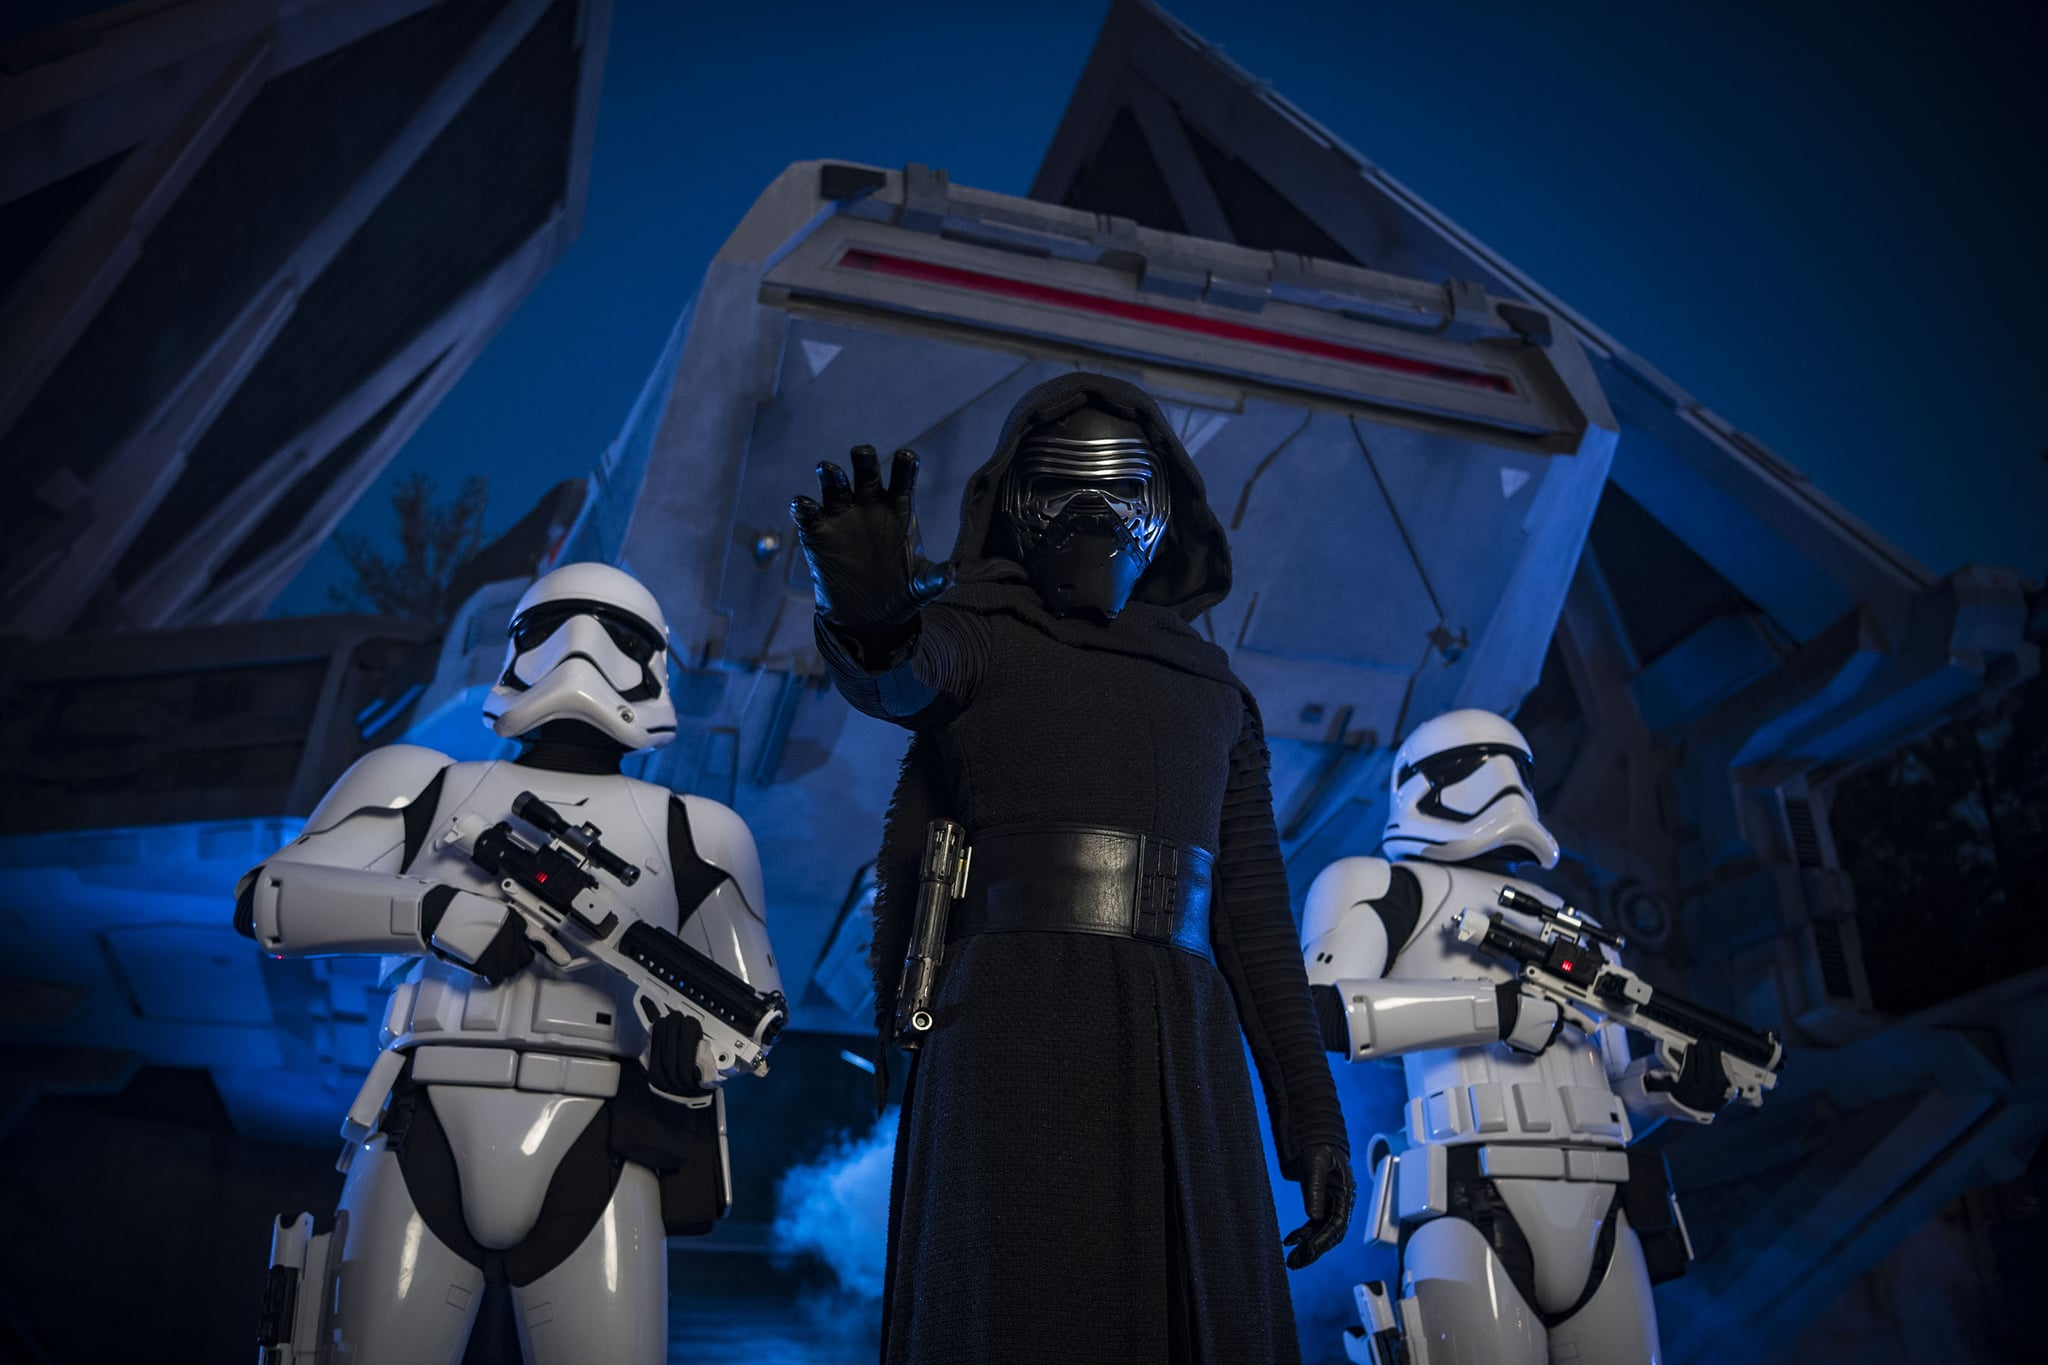 What Happens On The Rise Of The Resistance Ride Here S What Visitors Need To Know About The New Star Wars Rise Of The Resistance Ride Popsugar Family Photo 3